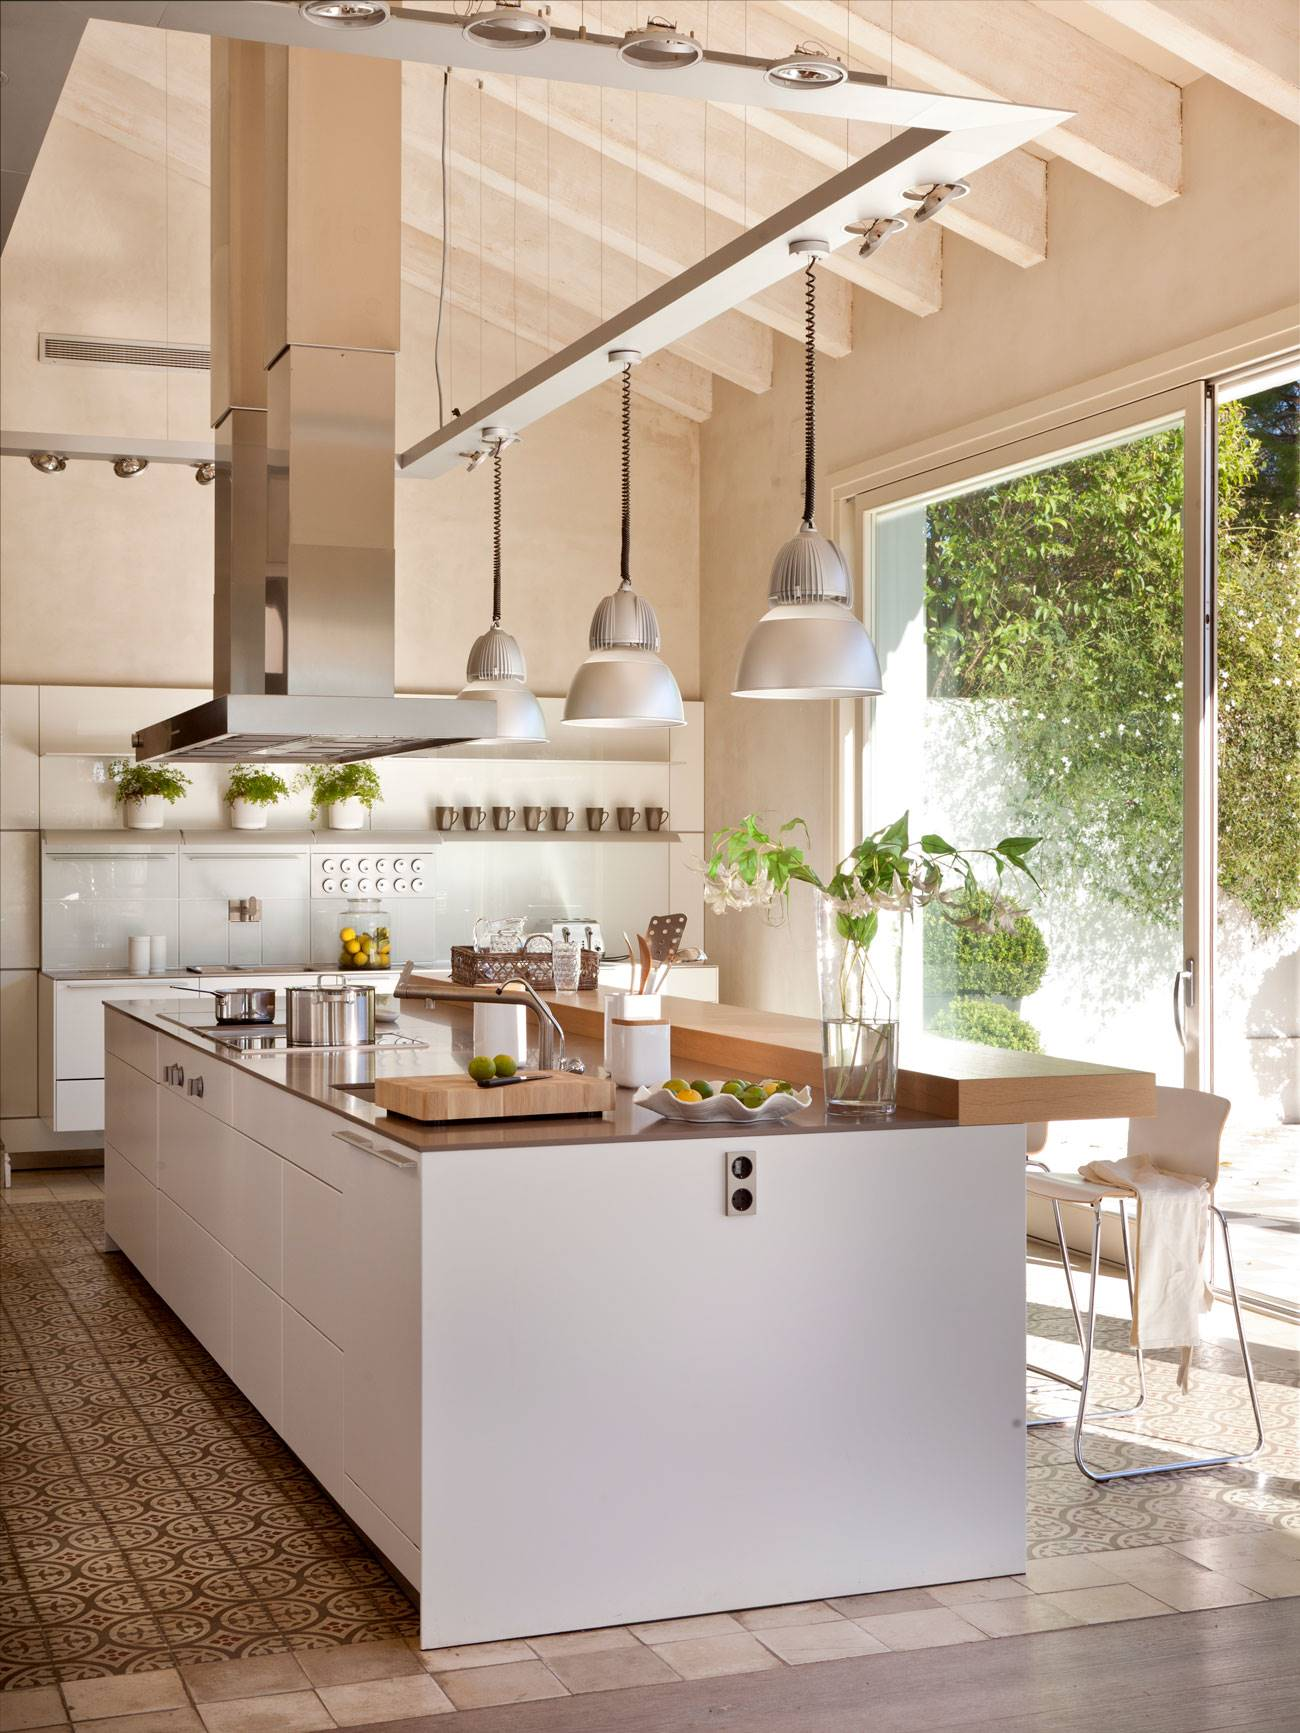 industrial-style-kitchen-in-country-rustic-farmhouse 404558 O. Industrial style with country flavor